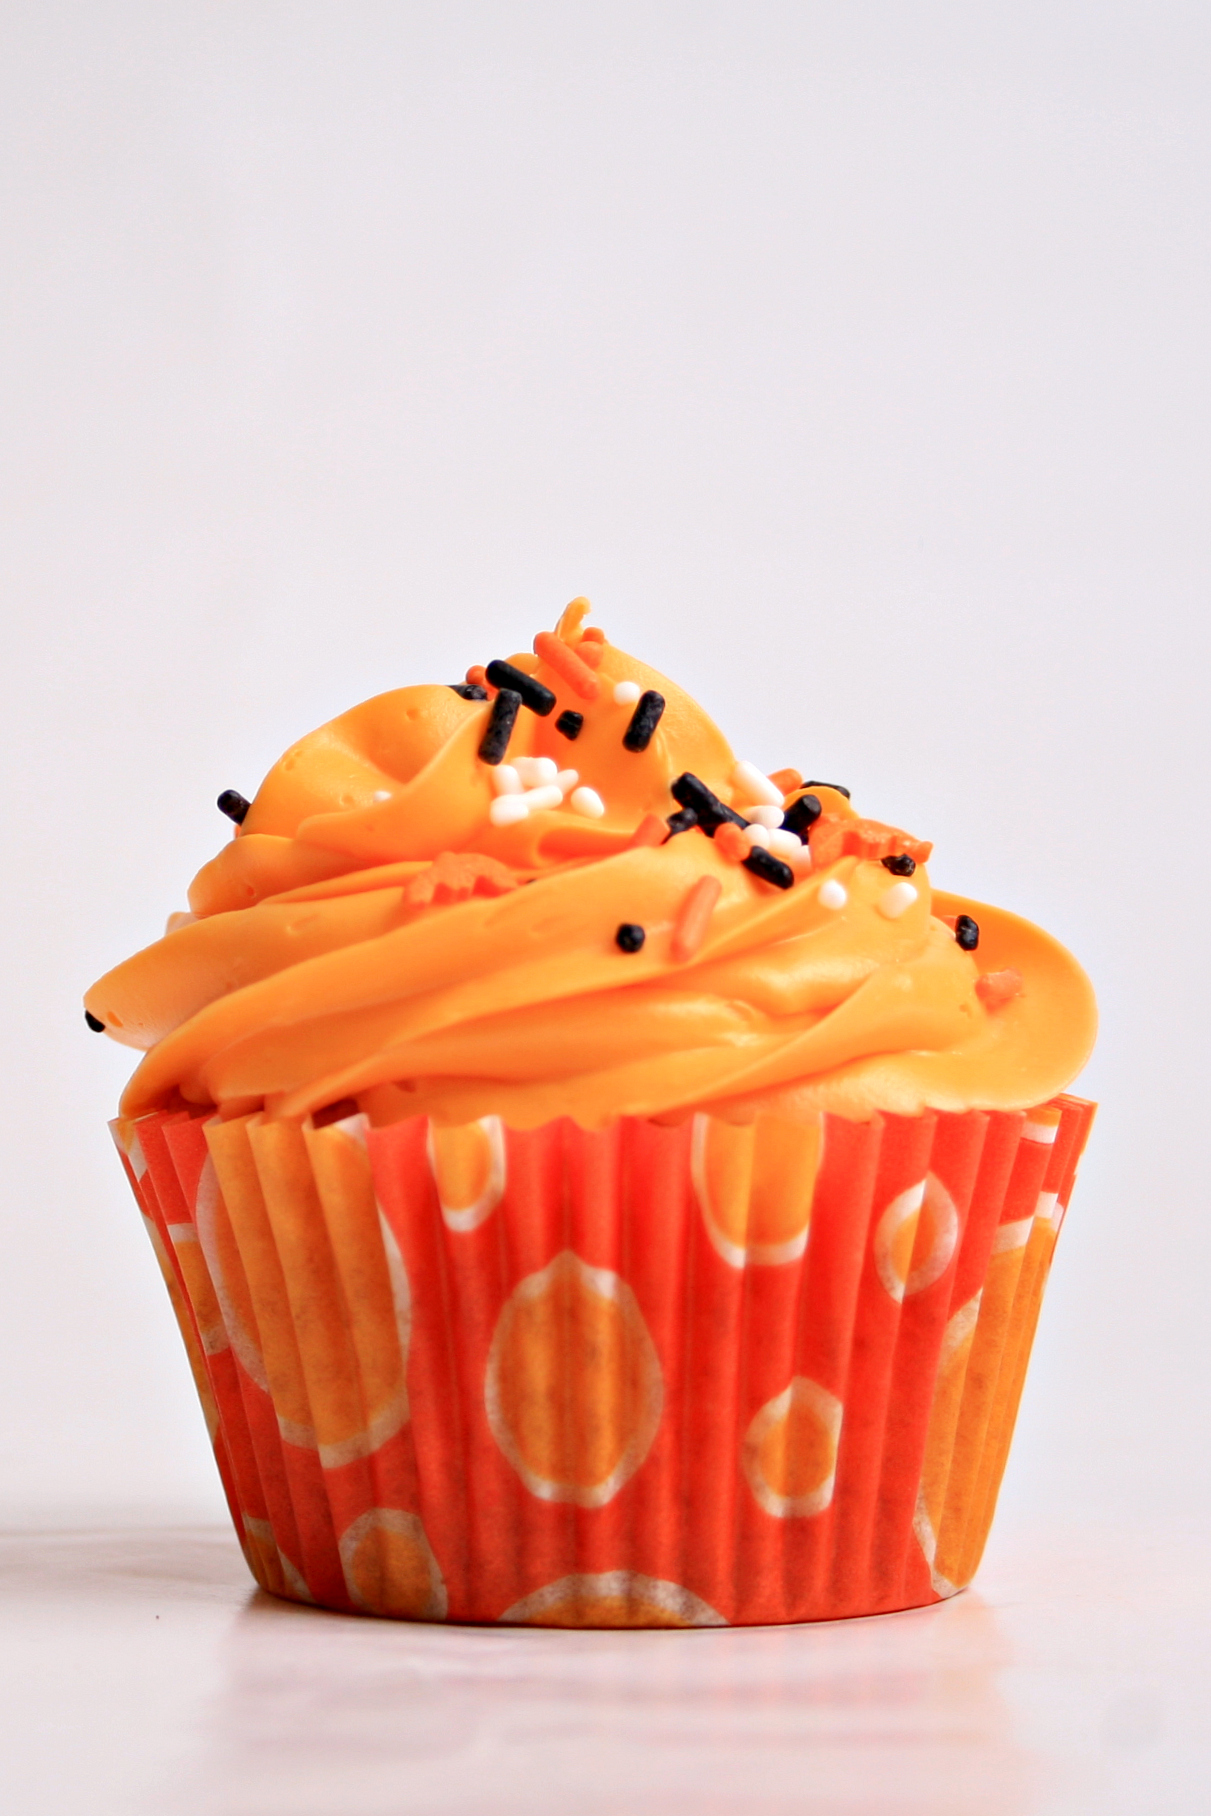 Orange Cupcakes - Random Photo (35742953) - Fanpop